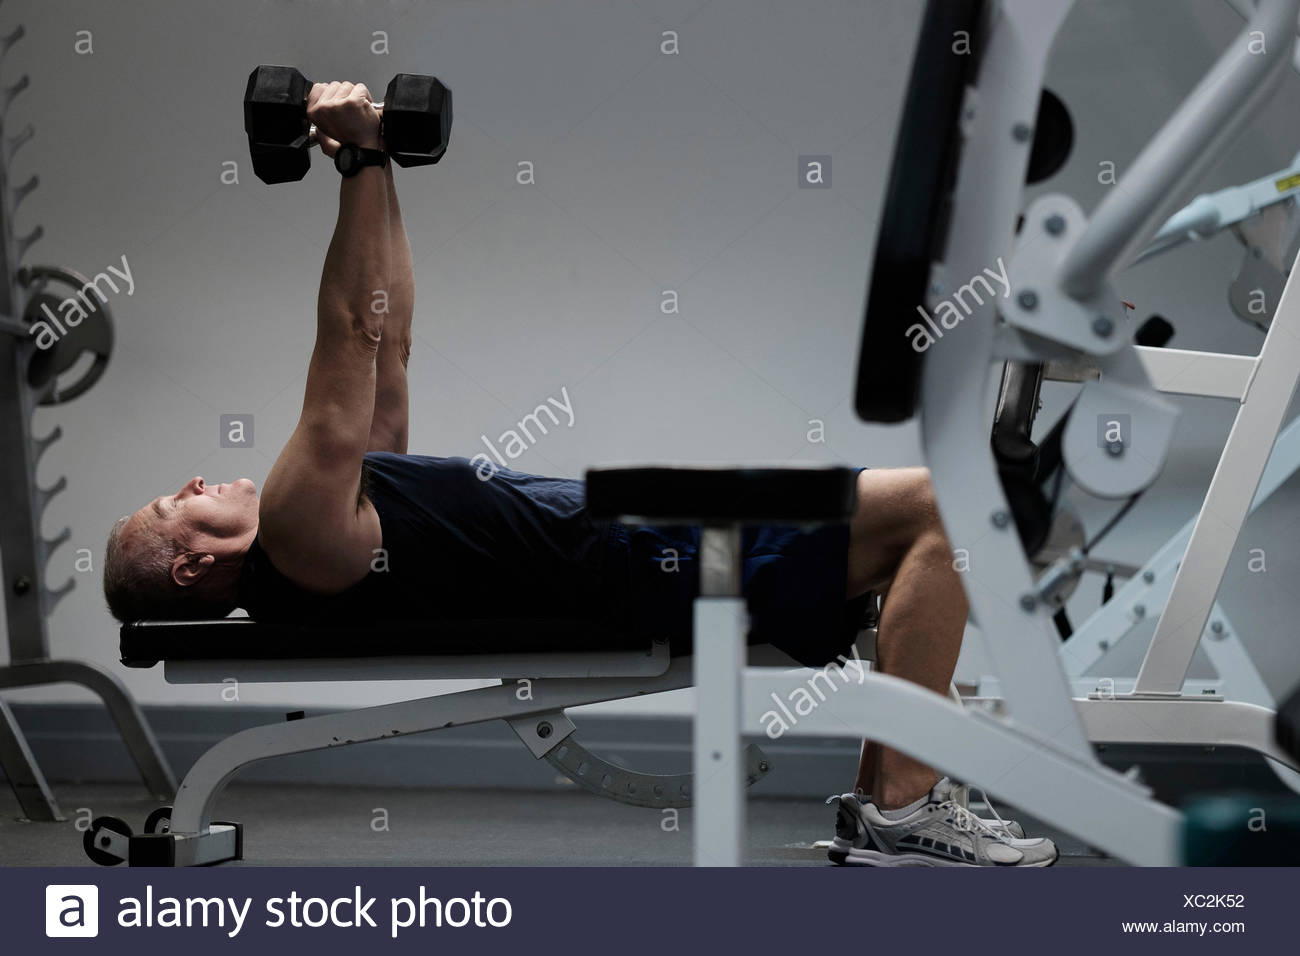 Man exercising with dumbbells on weight bench - Stock Image